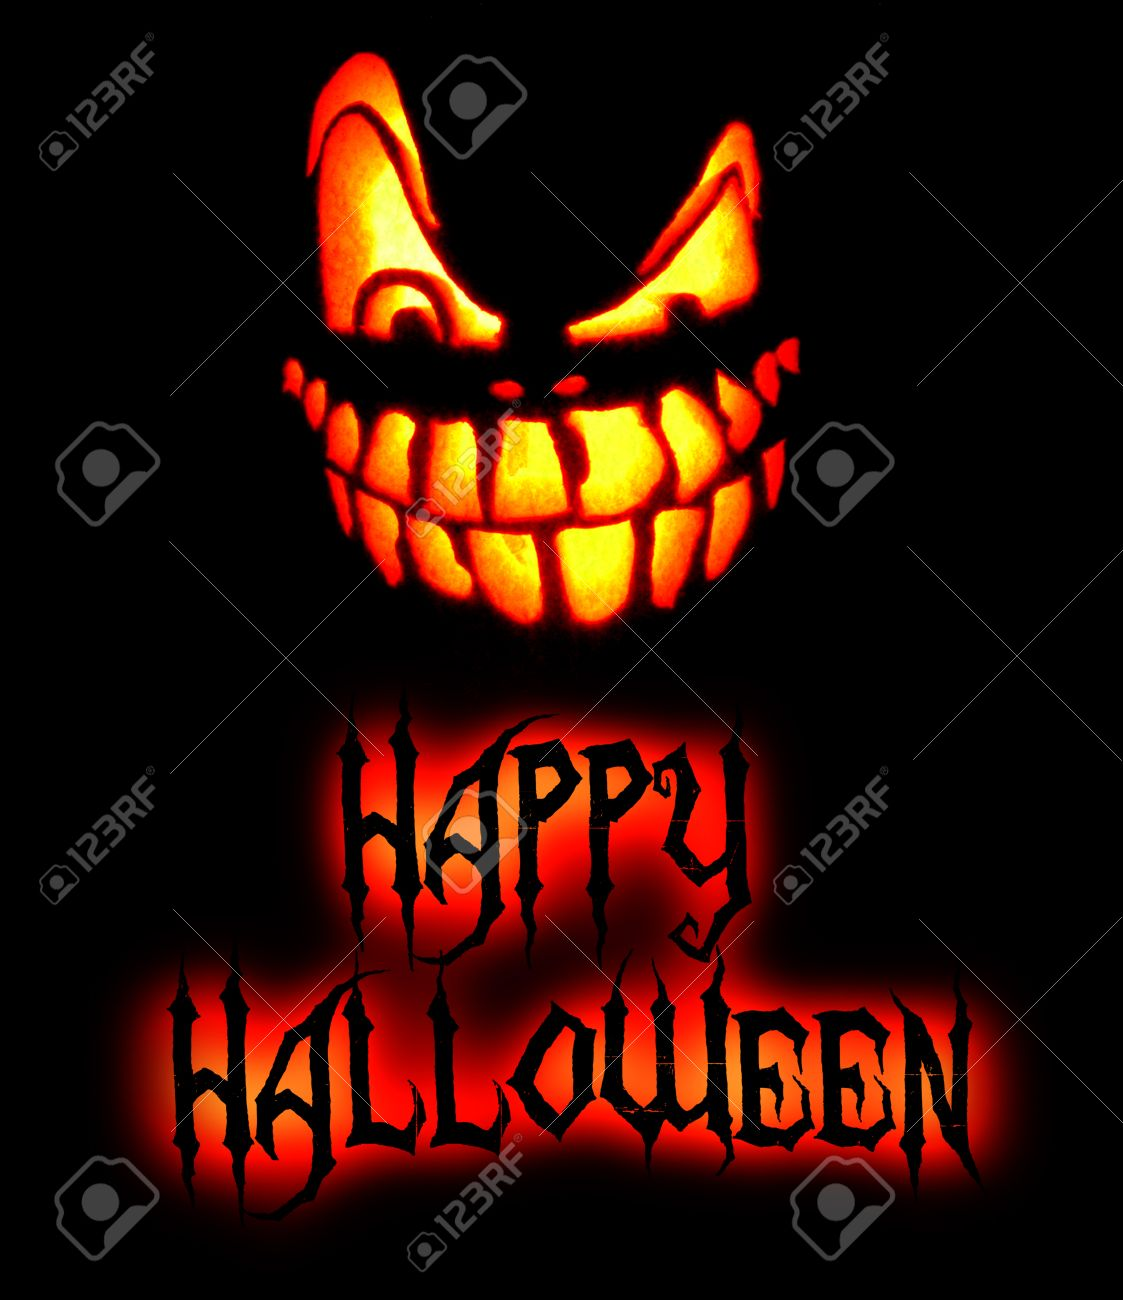 Happy Halloween Card With Scary Pumpkin Face And Black Lettering Saying  Happy Halloween, Yellow And